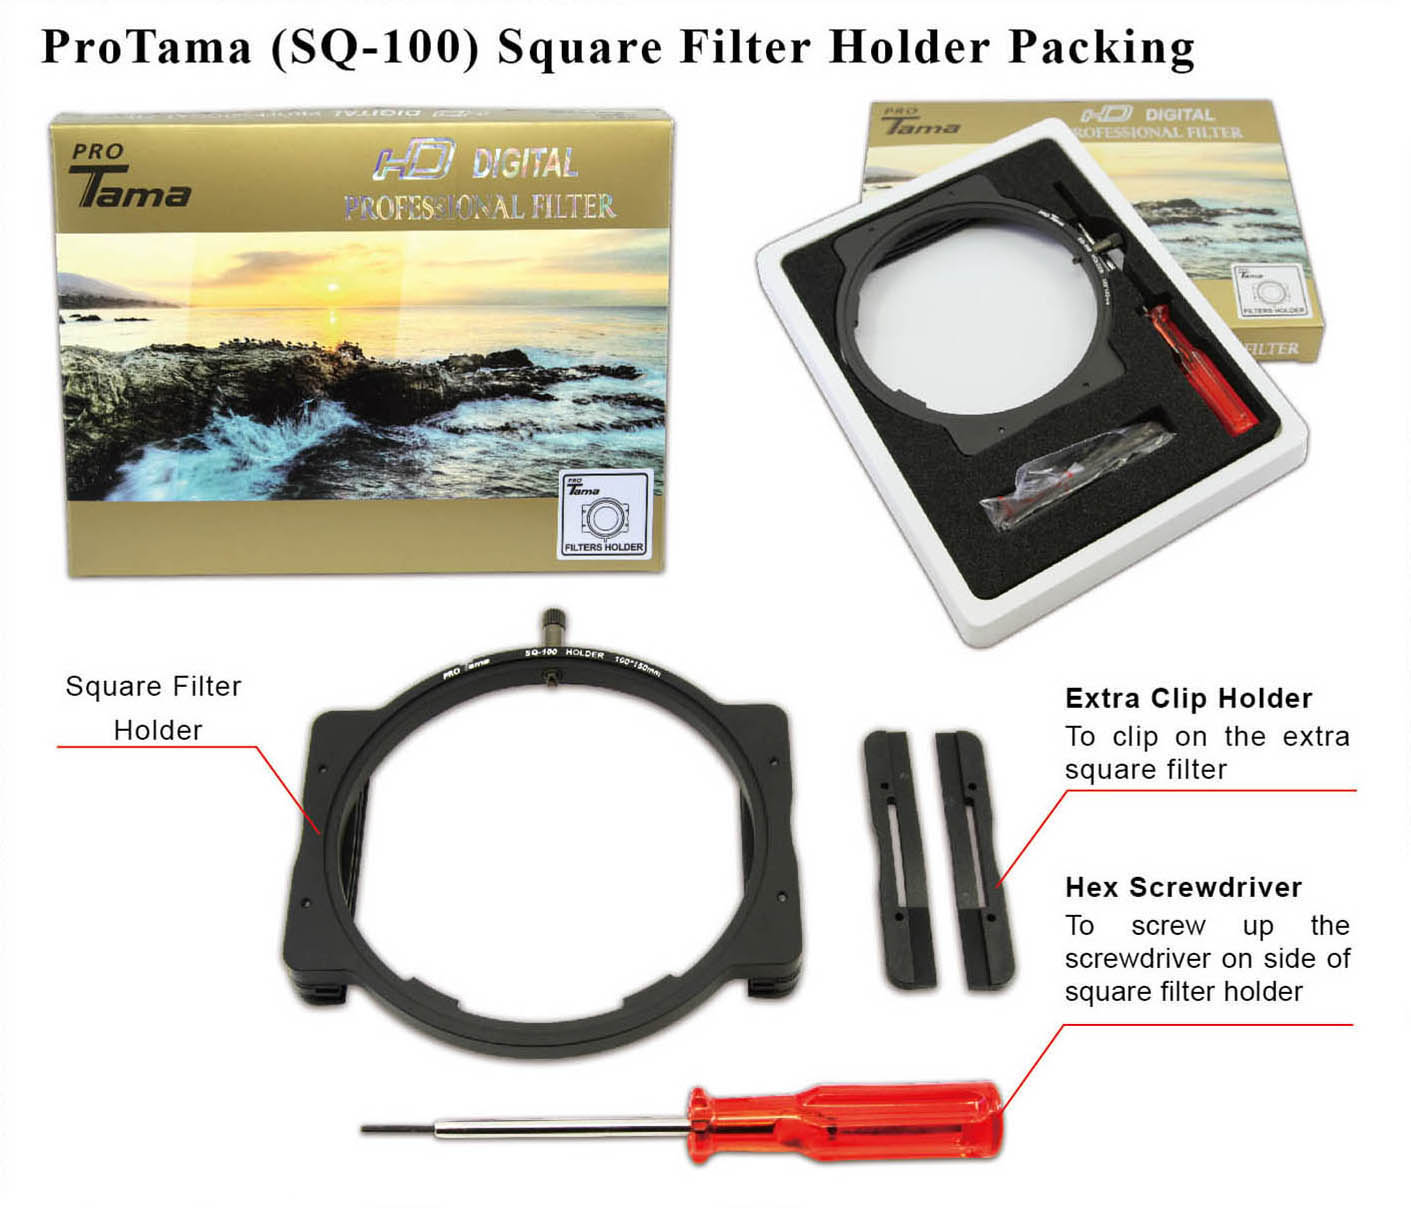 ProTama (SQ-100) Square Filter Holder Packing - Package included a square filter holder, a extra clip holder and a hex screwdriver